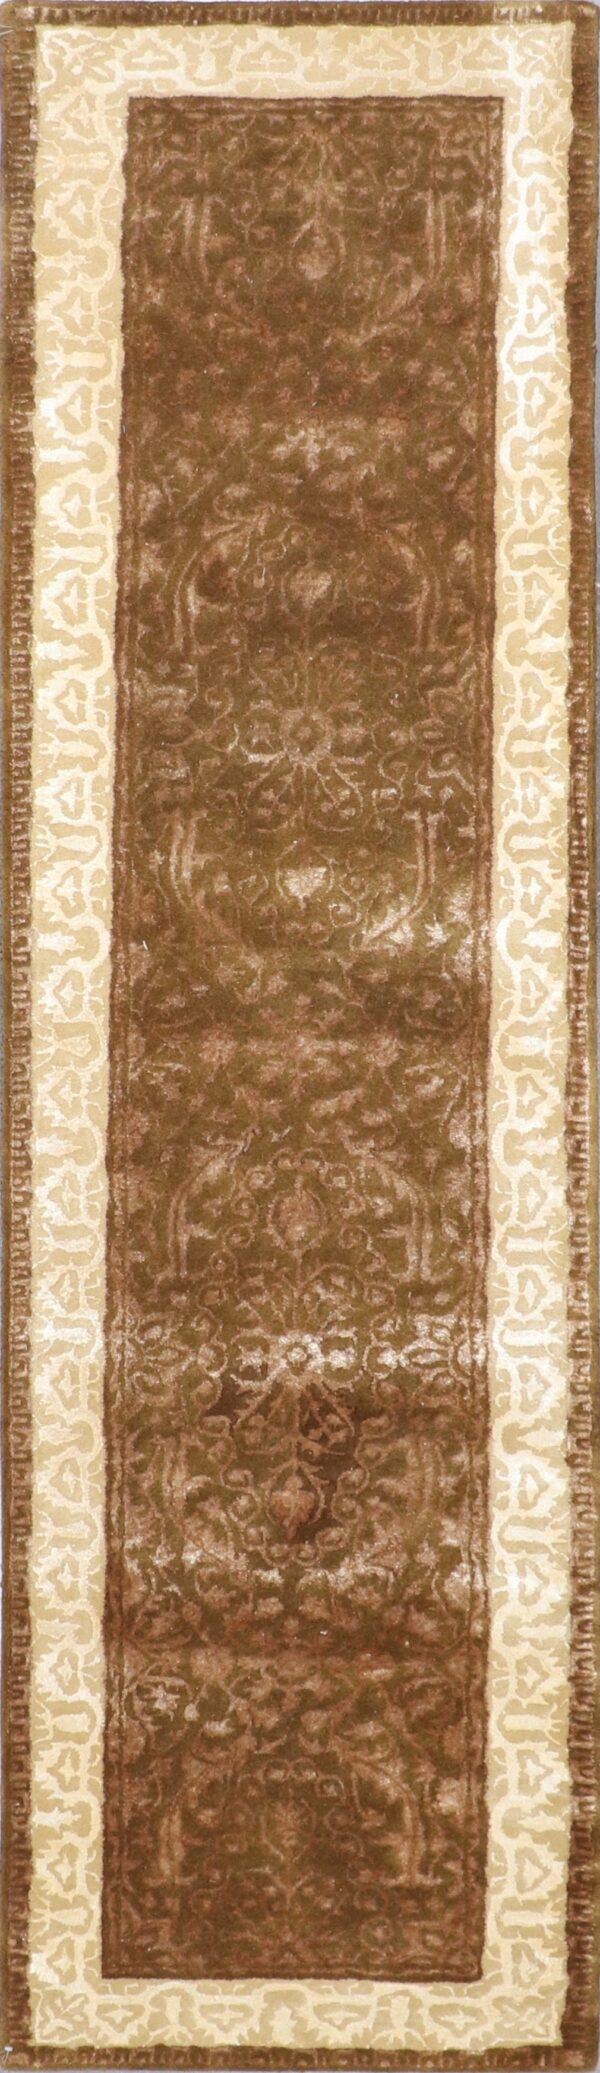 """2'6""""x9'10"""" Transitional Wool & Silk Hand-Tufted Rug - Direct Rug Import 